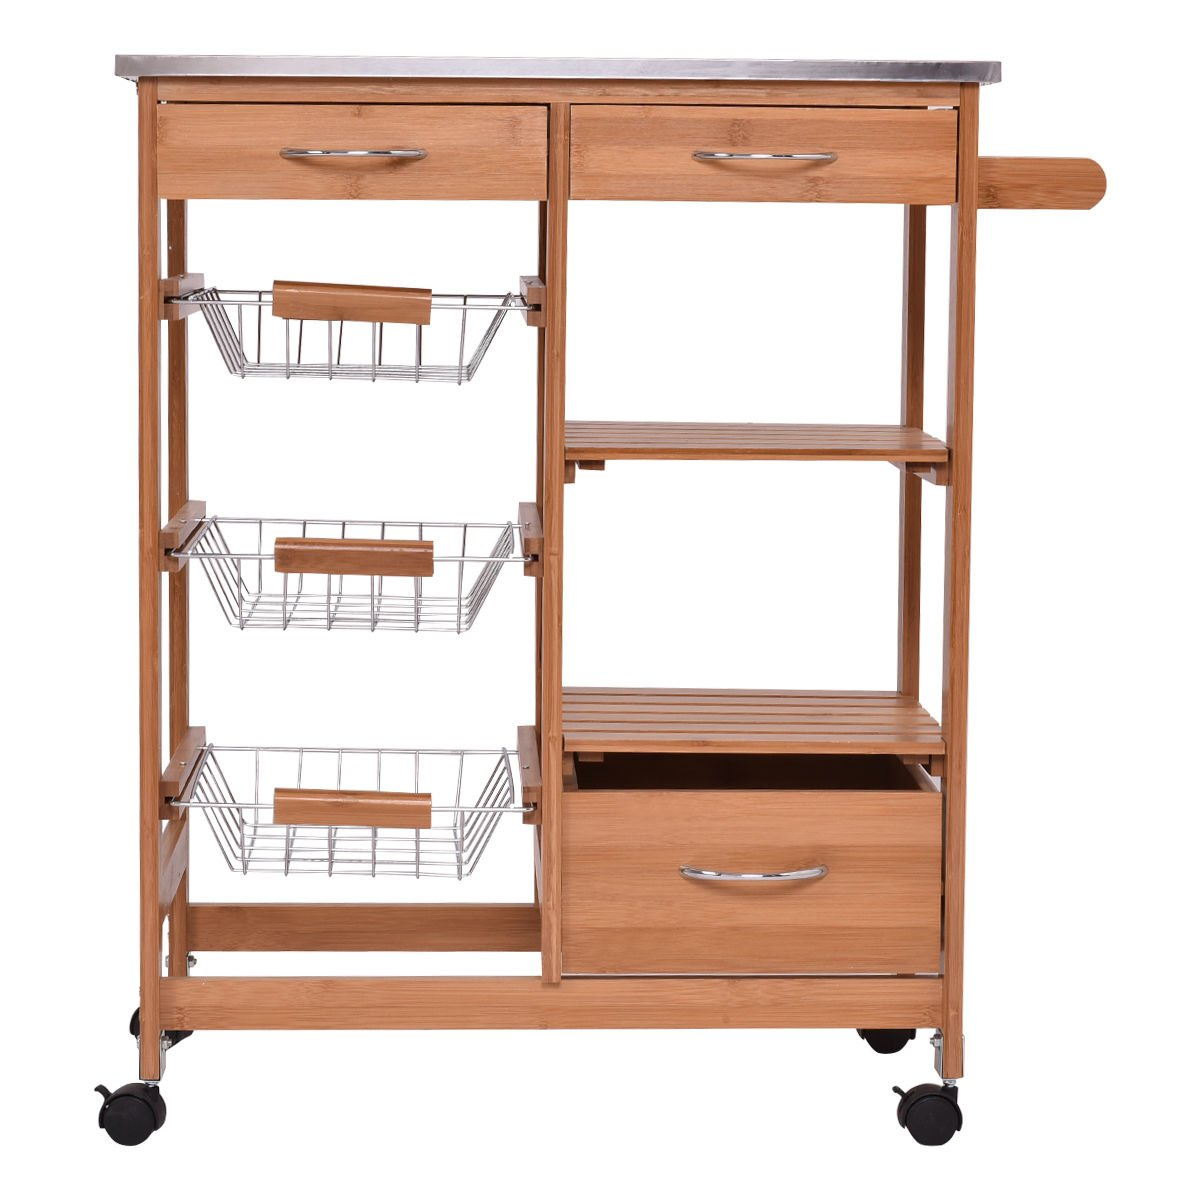 Bamboo portable Rolling Kitchen Island Trolley Cart Storage Shelf Drawers Basket Dining cart is ideal for adding extra counter space to your kitchen.